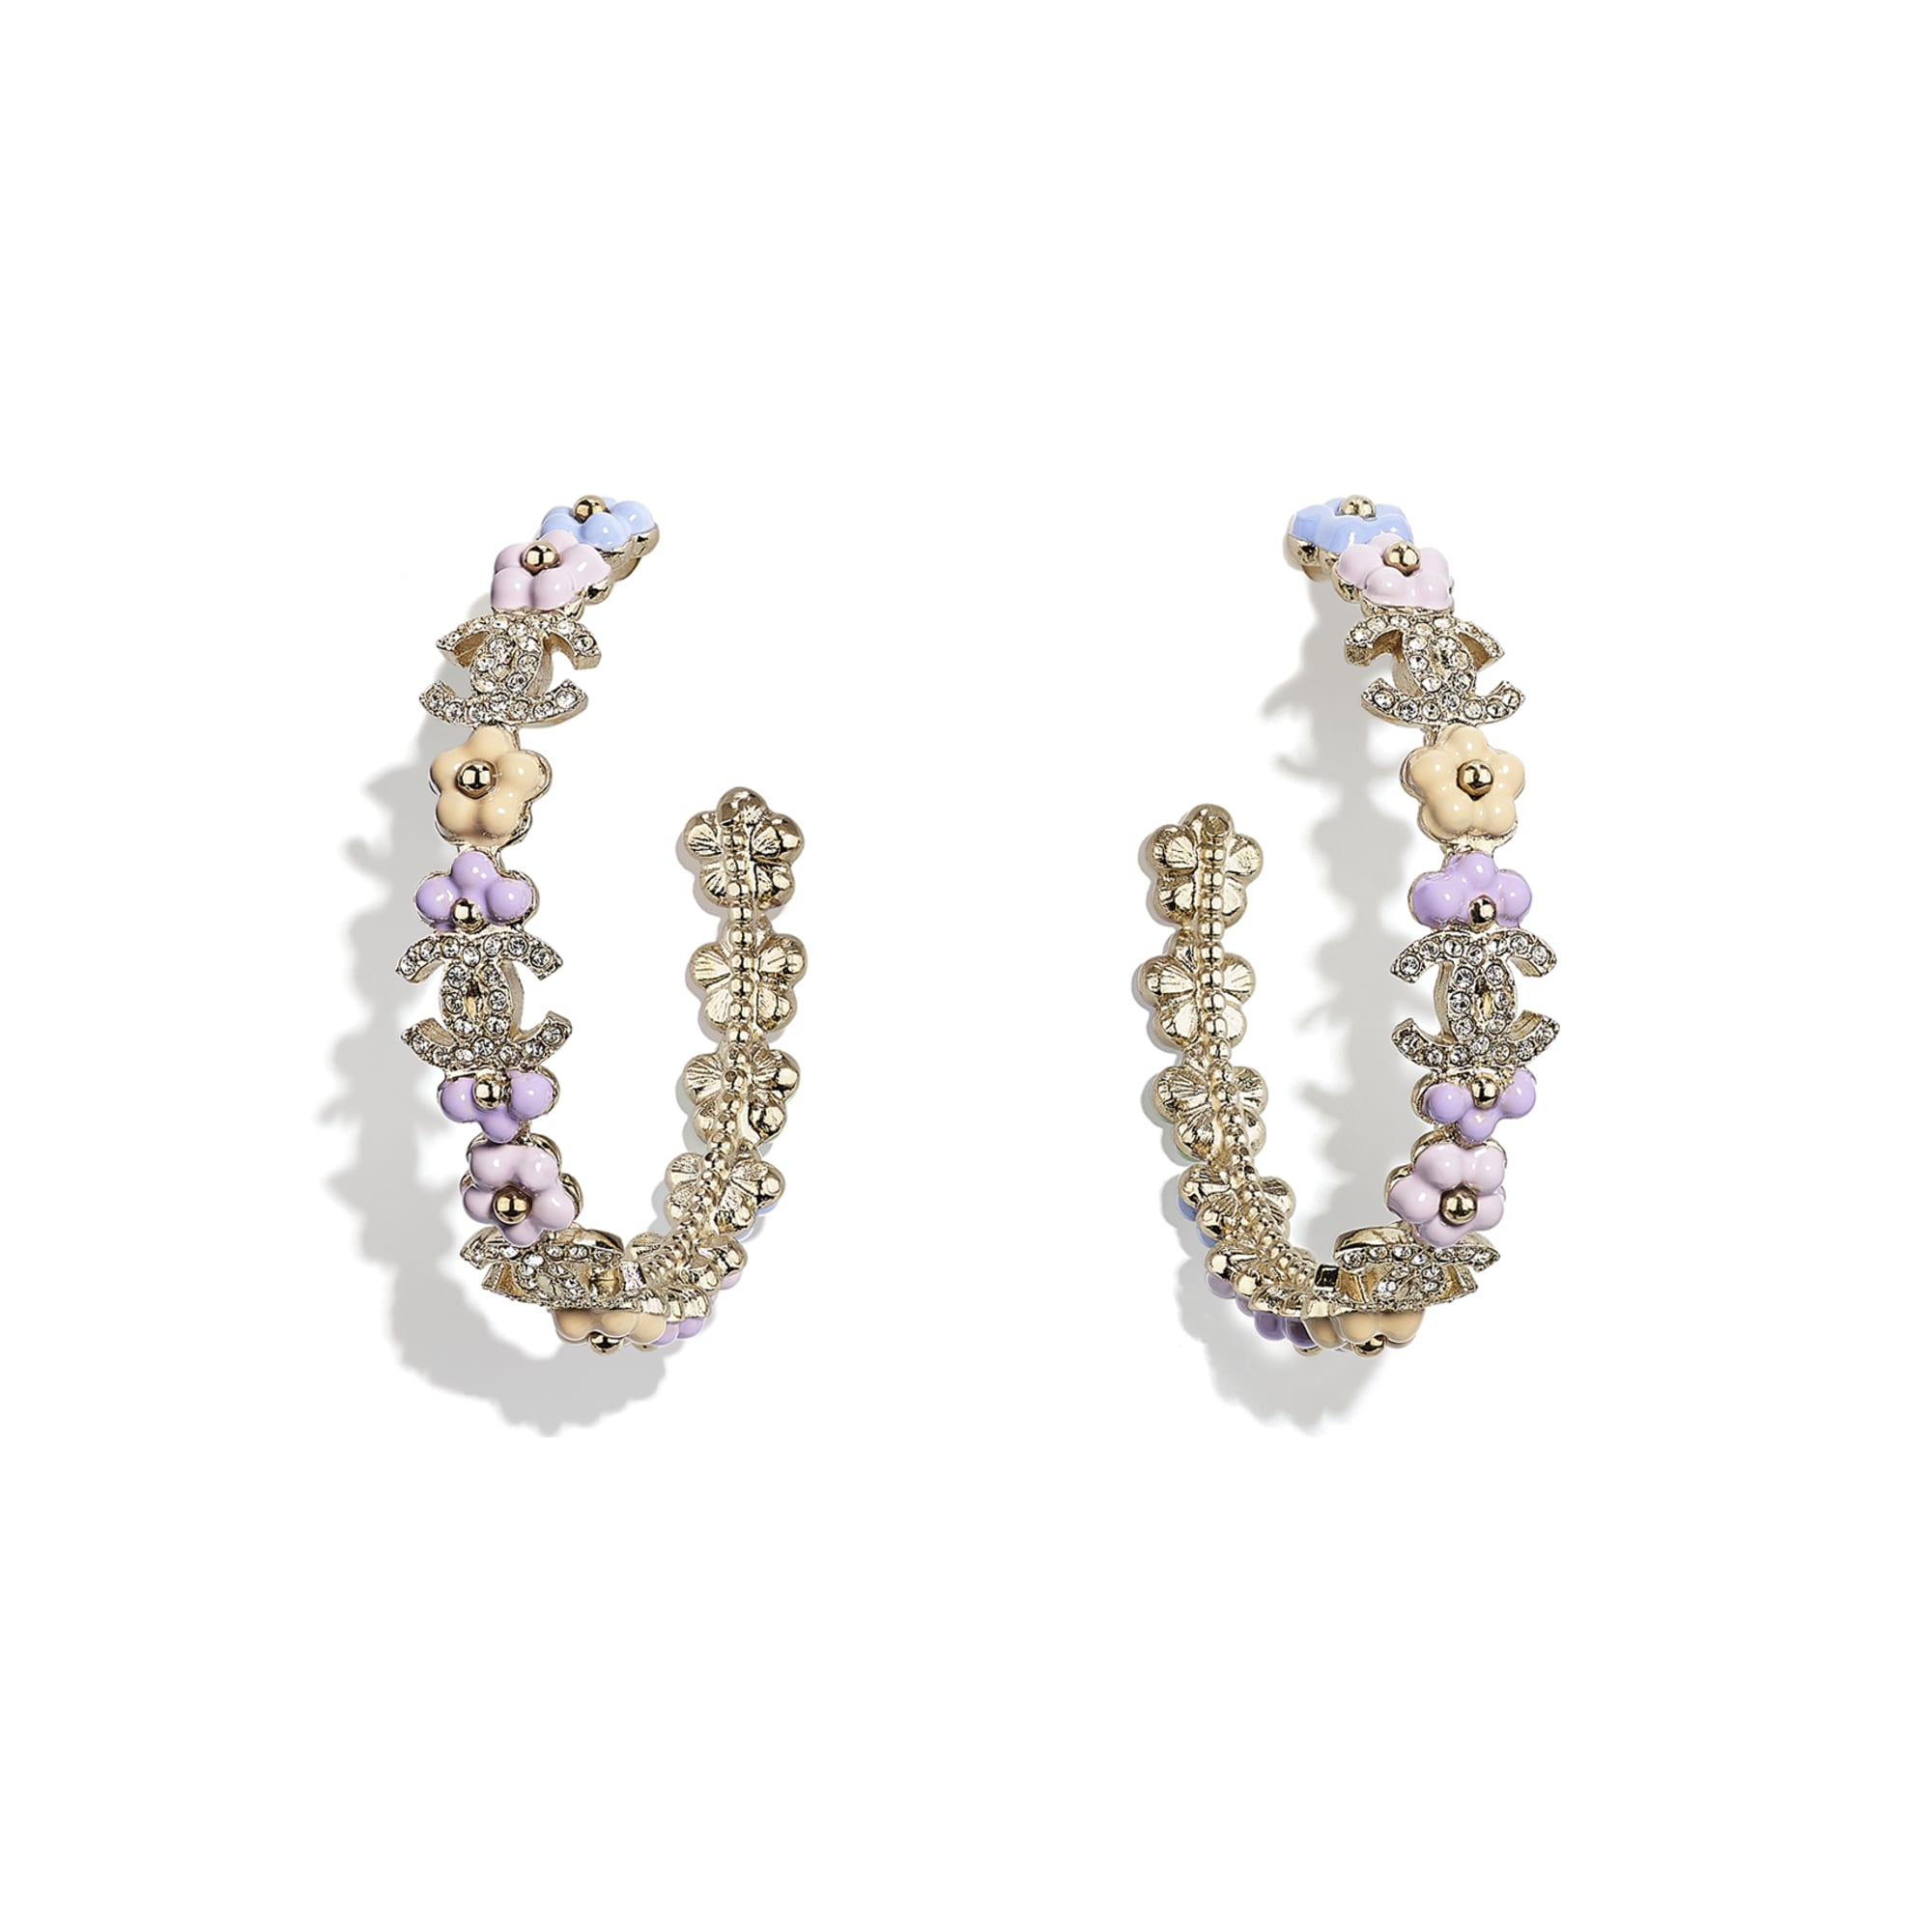 Earrings - Gold, Multicolour & Crystal - Metal & Diamantés - CHANEL - Default view - see standard sized version